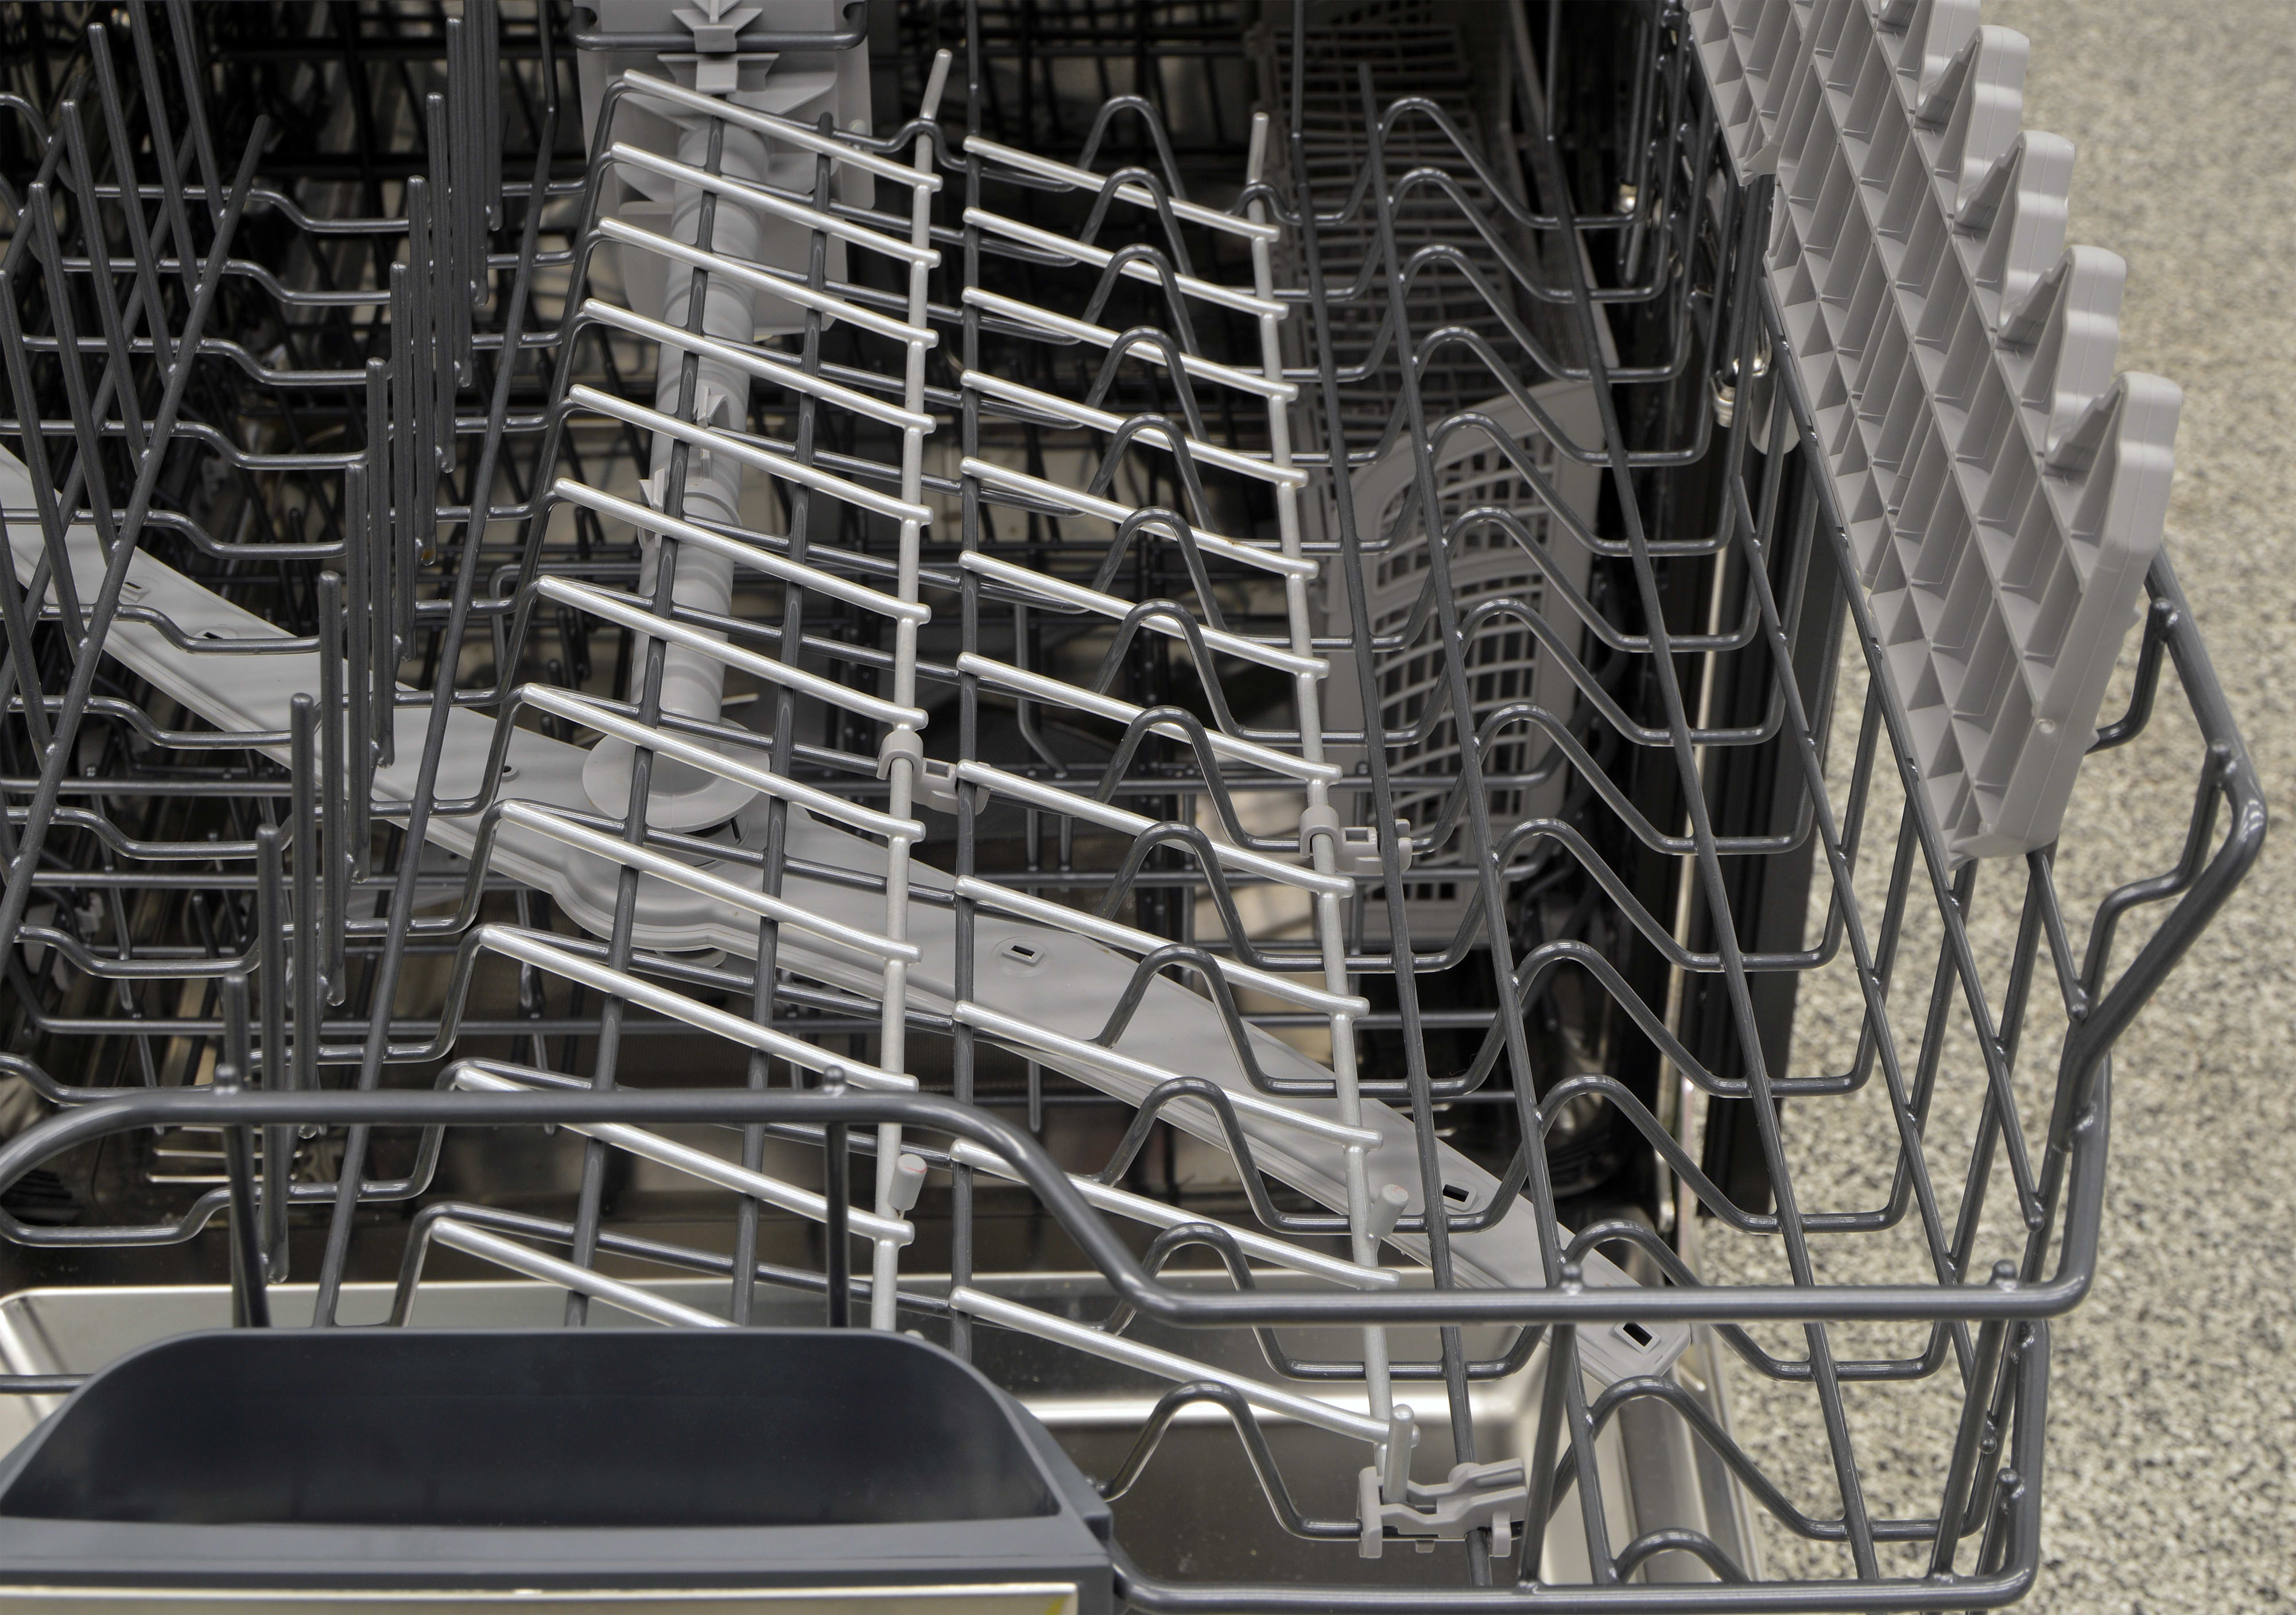 The tines of the upper rack folded down